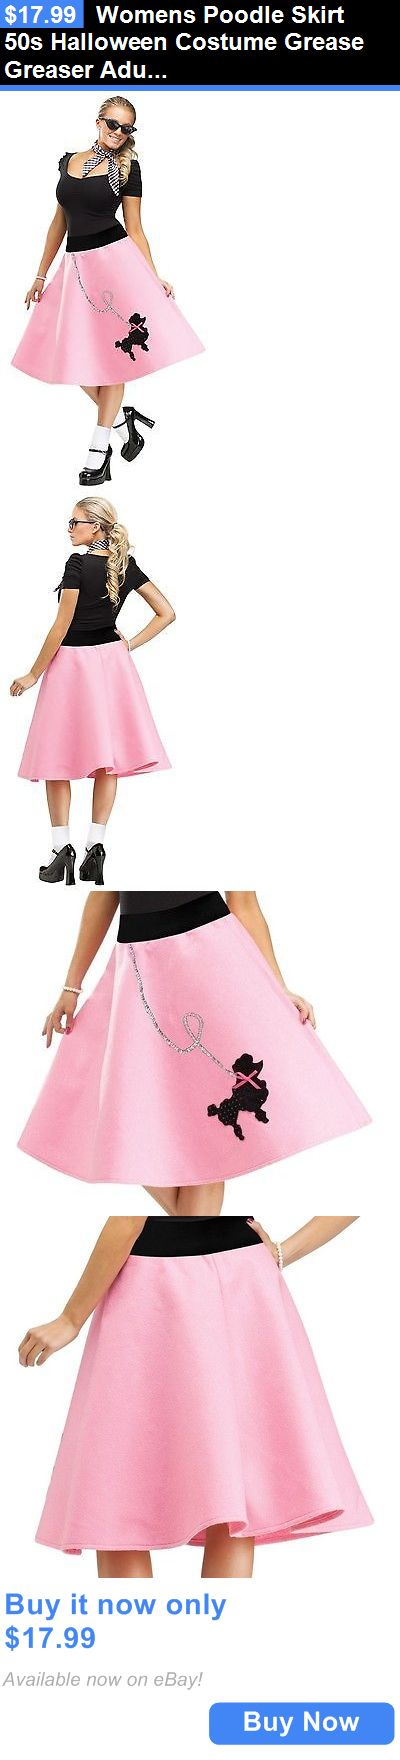 Women Costumes: Womens Poodle Skirt 50S Halloween Costume Grease Greaser Adult Fancy Dress New BUY IT NOW ONLY: $17.99